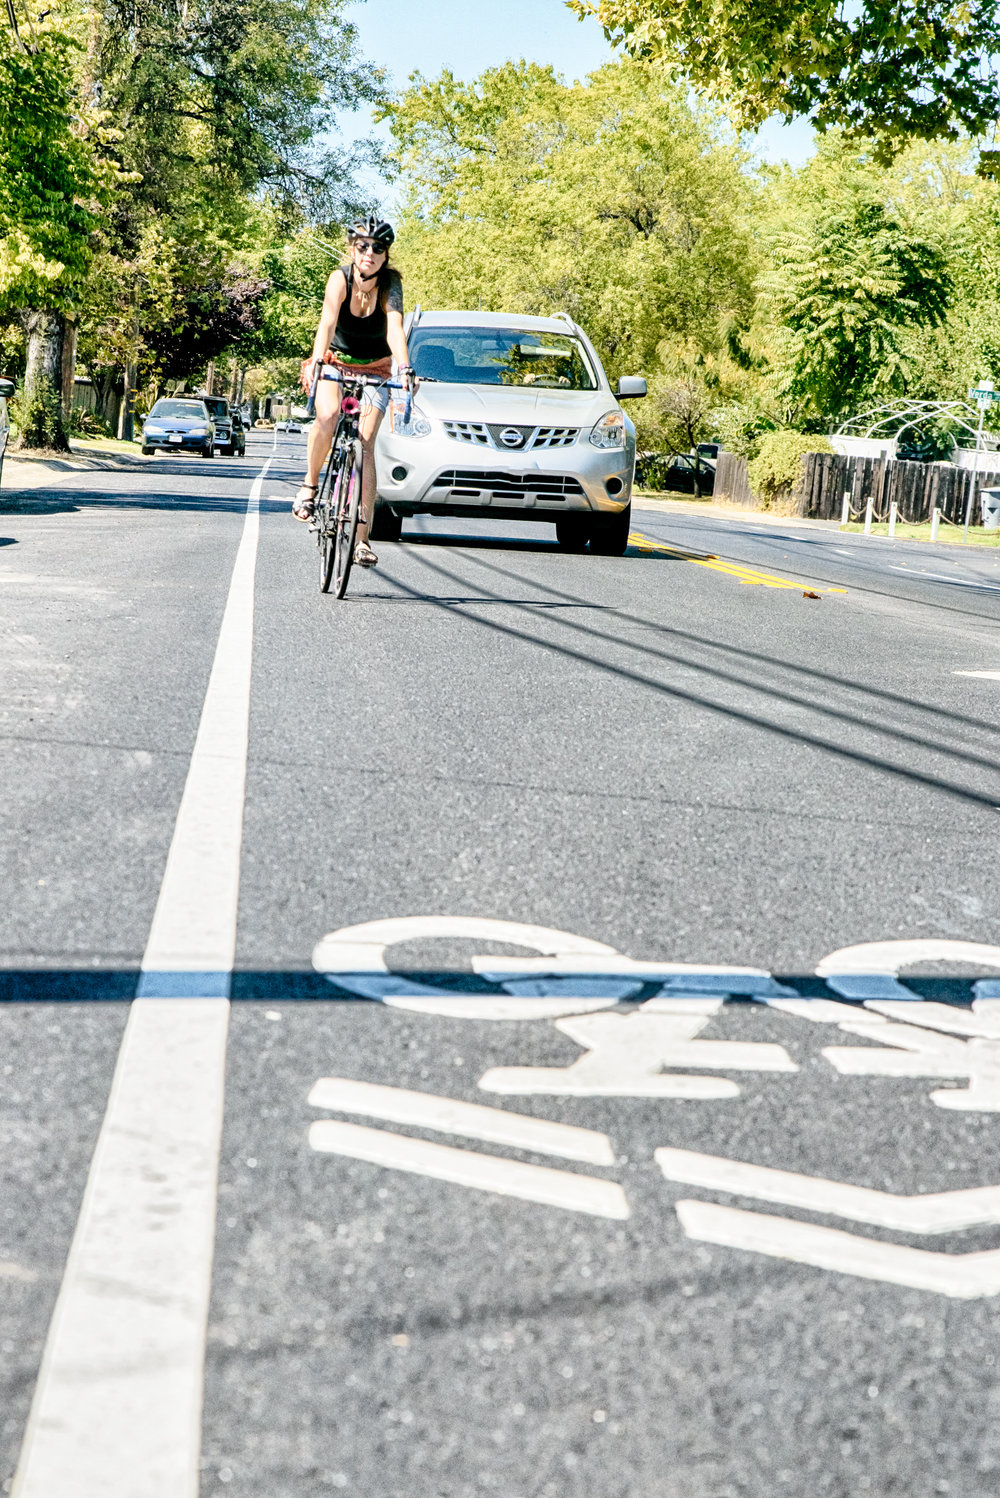 An inexperienced or cautious cyclist may ride on the edge lane, a potentially dangerous place to ride.